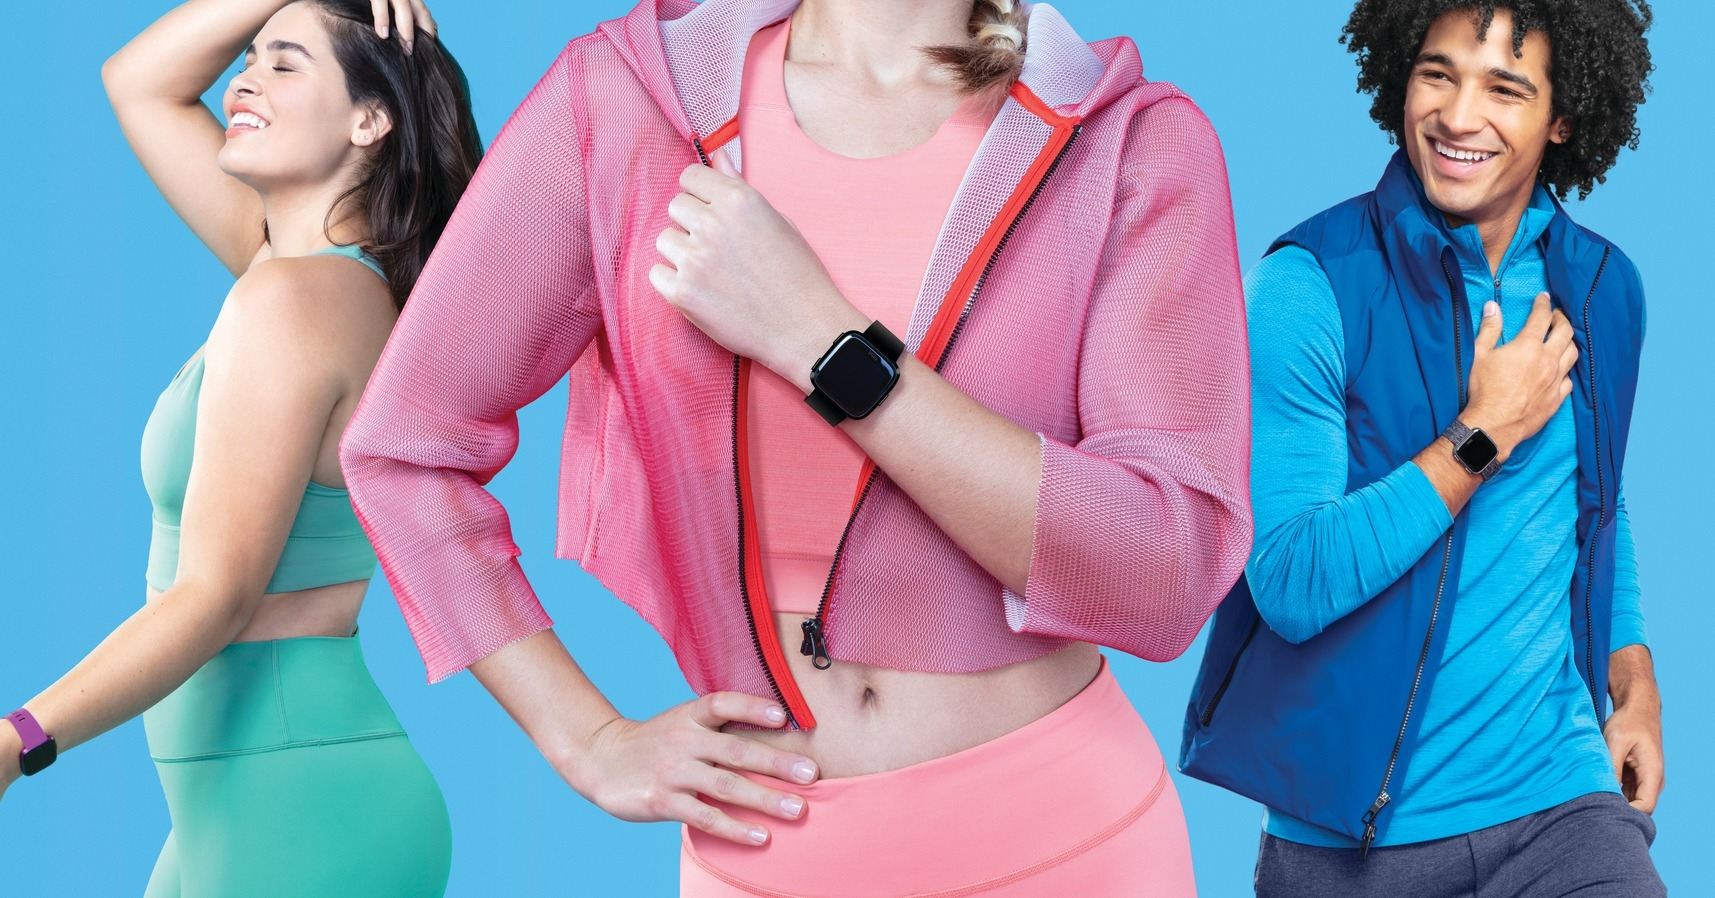 , Fitbit, Apple Watch, Smartwatch, Outerwear, Light, Shoulder, Apple, Textile, Pink M, clothing, Abdomen, Pink, Shoulder, Arm, Outerwear, Neck, Waist, Stomach, Trunk, Sleeve